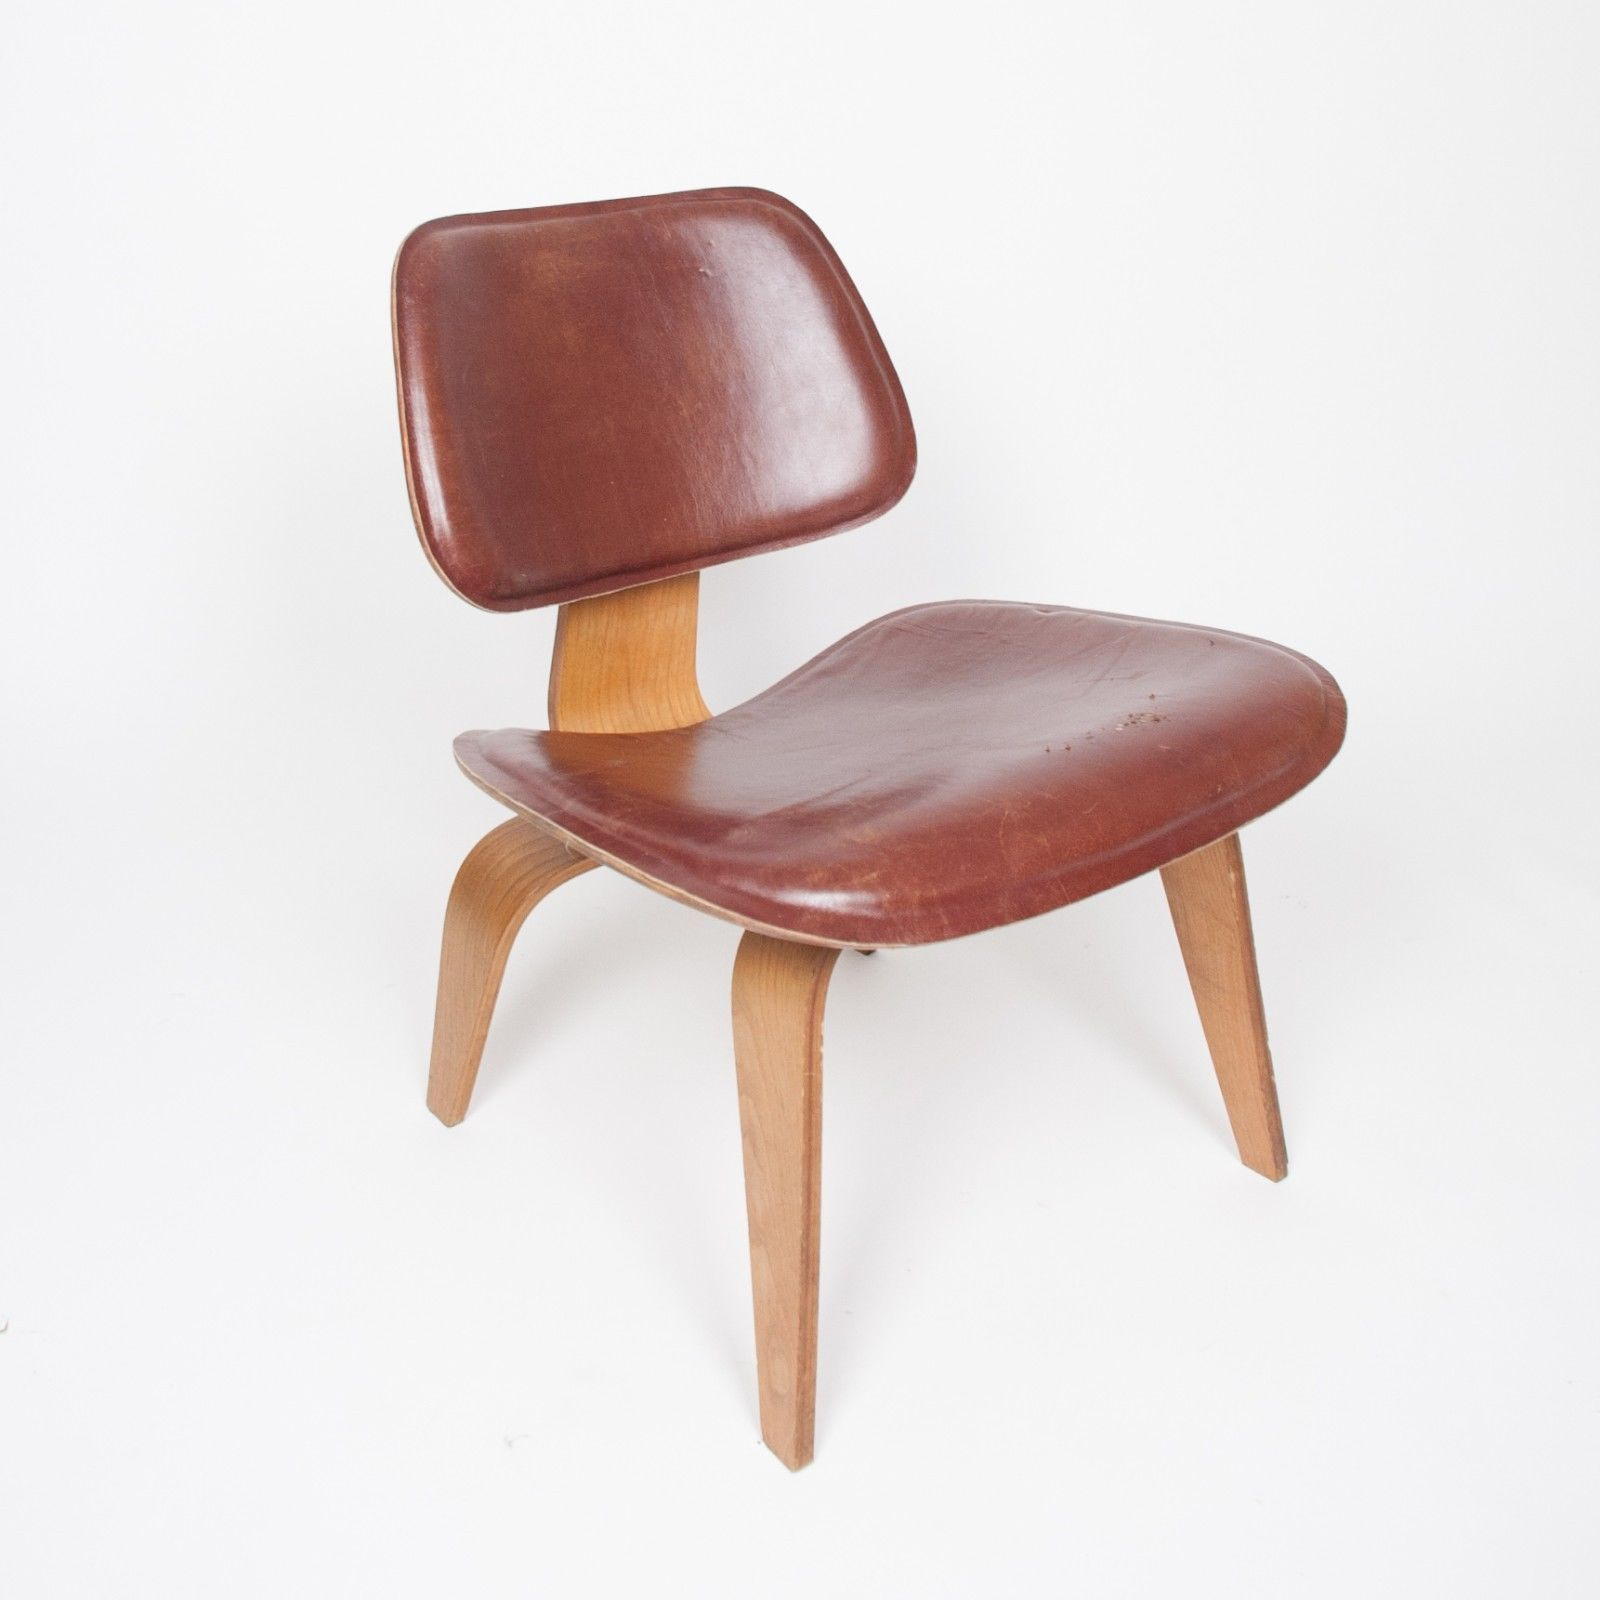 eames chair leather. RARE Eames Evans Herman Miller 1947 LCW Plywood Lounge Chair Leather! 5-2-5 Leather T